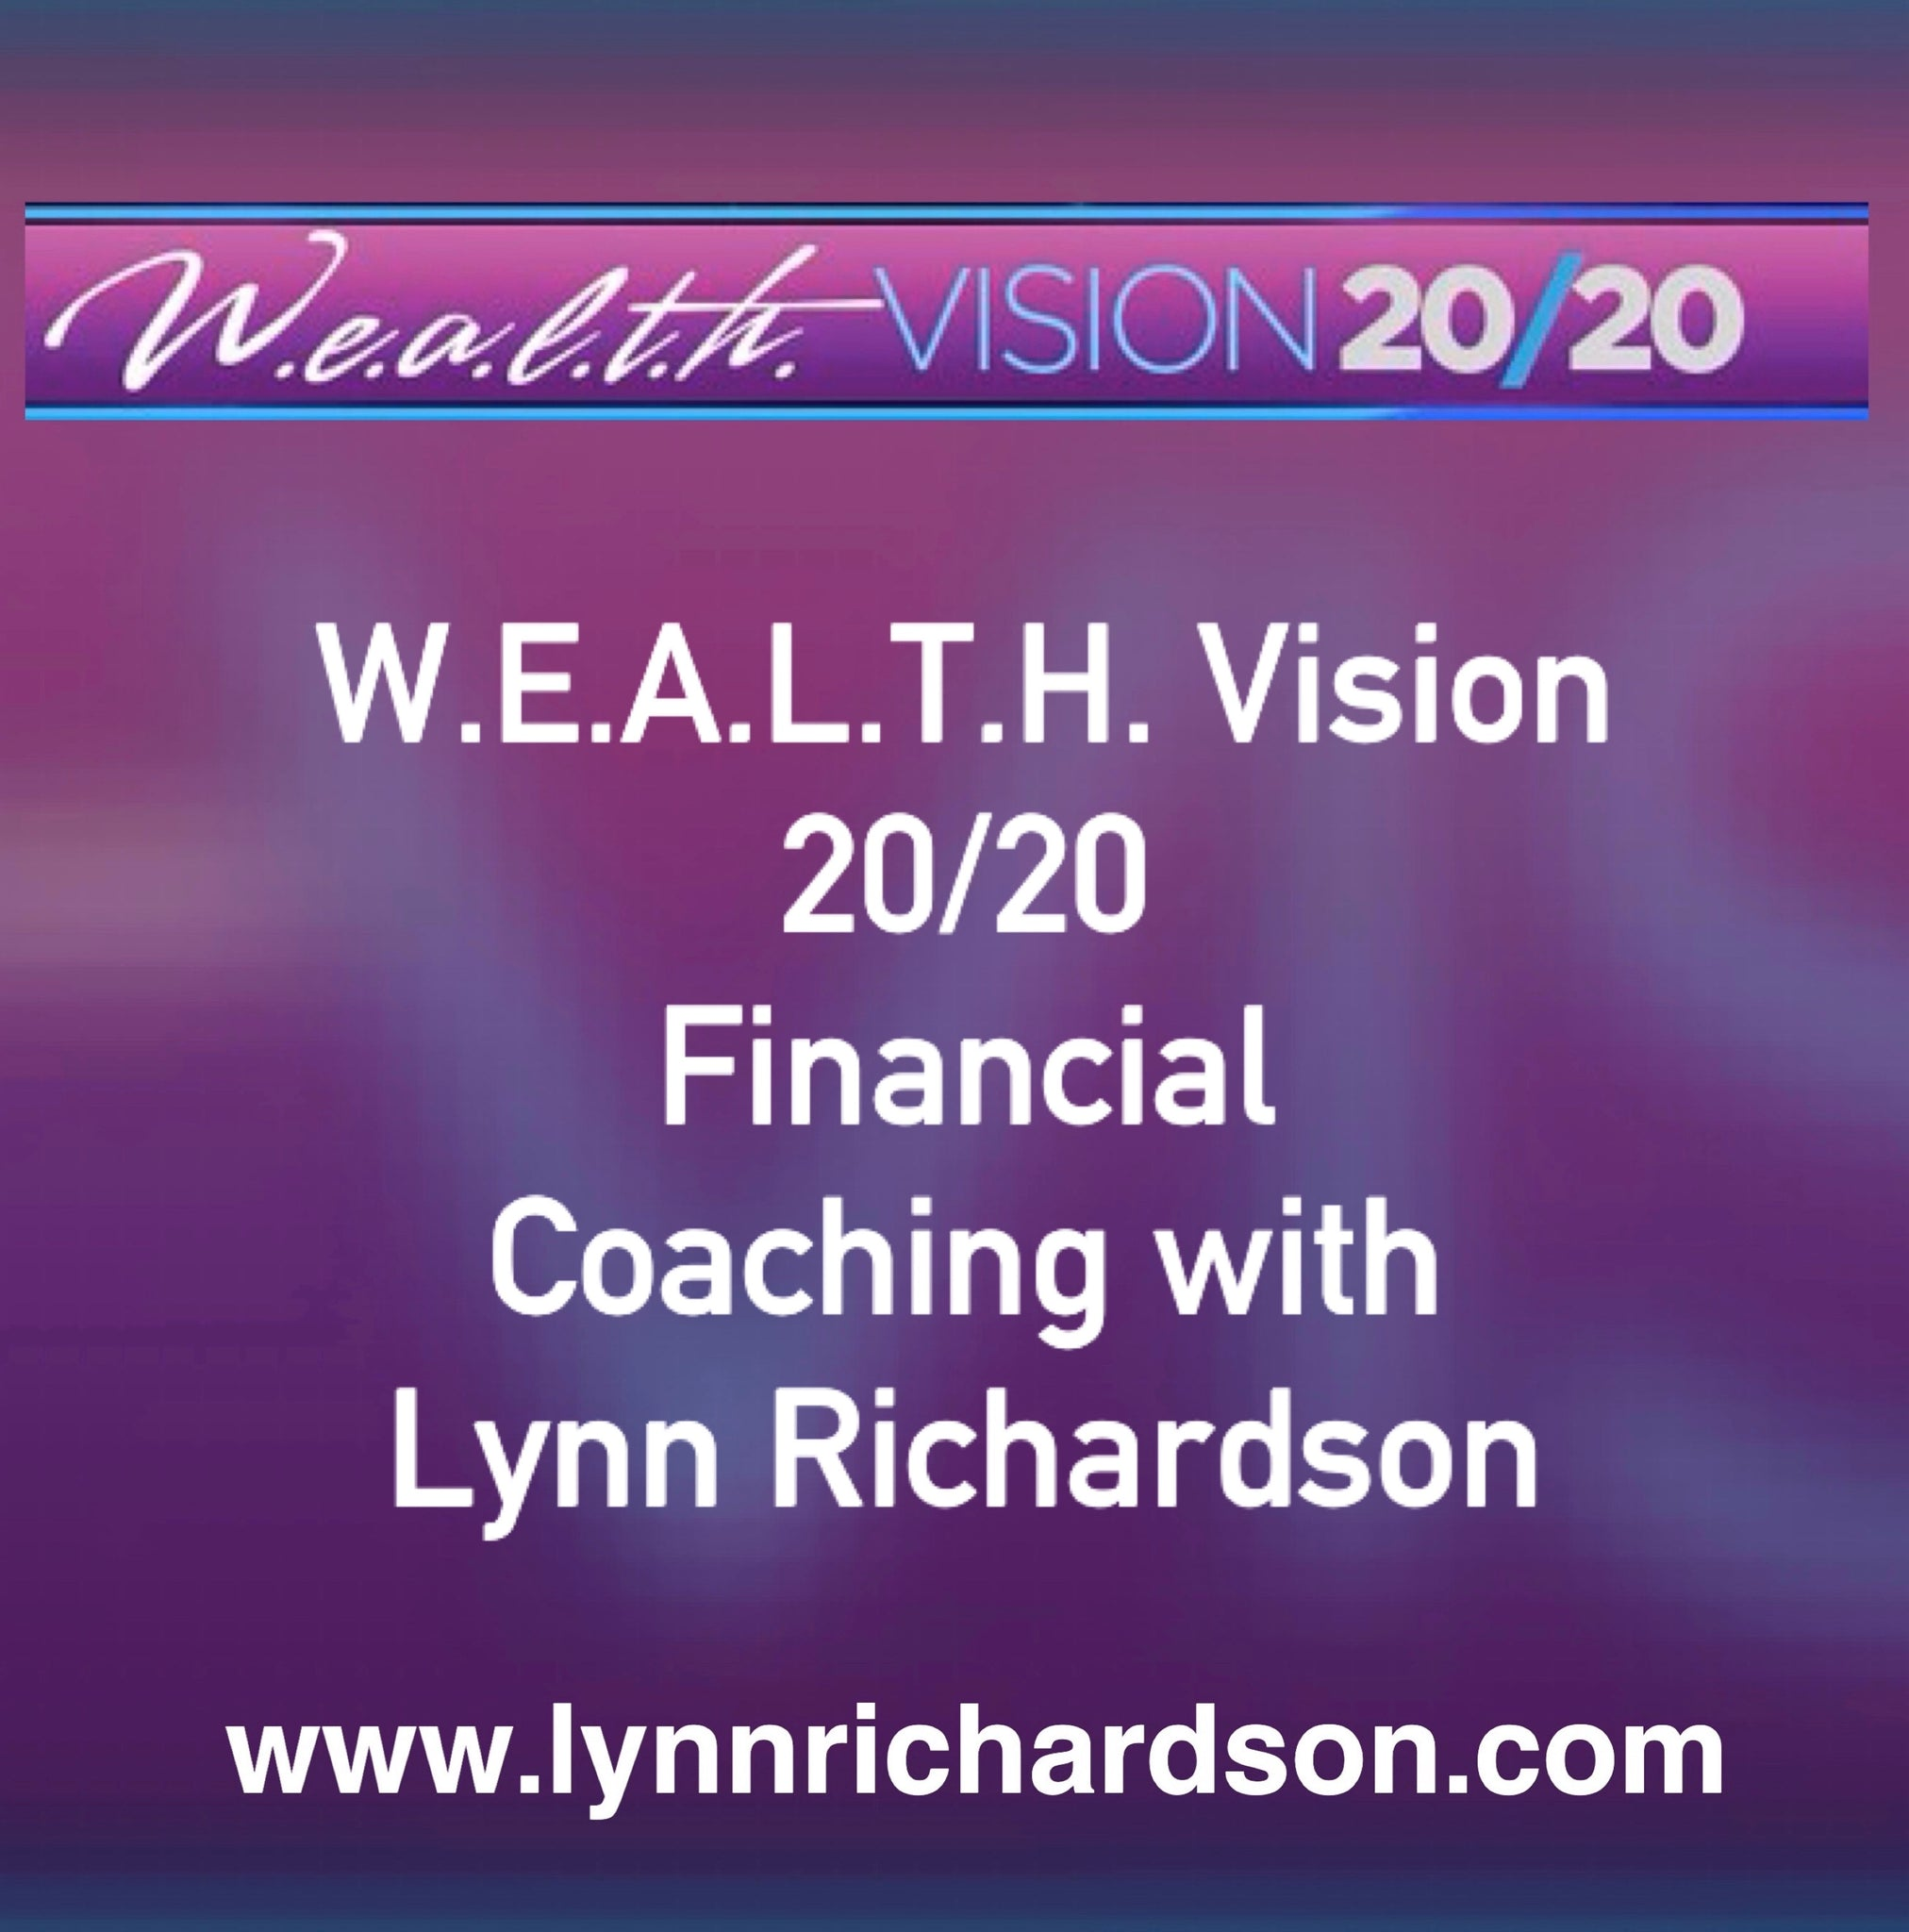 W.E.A.L.T.H. Vision 20/20 Financial Coaching